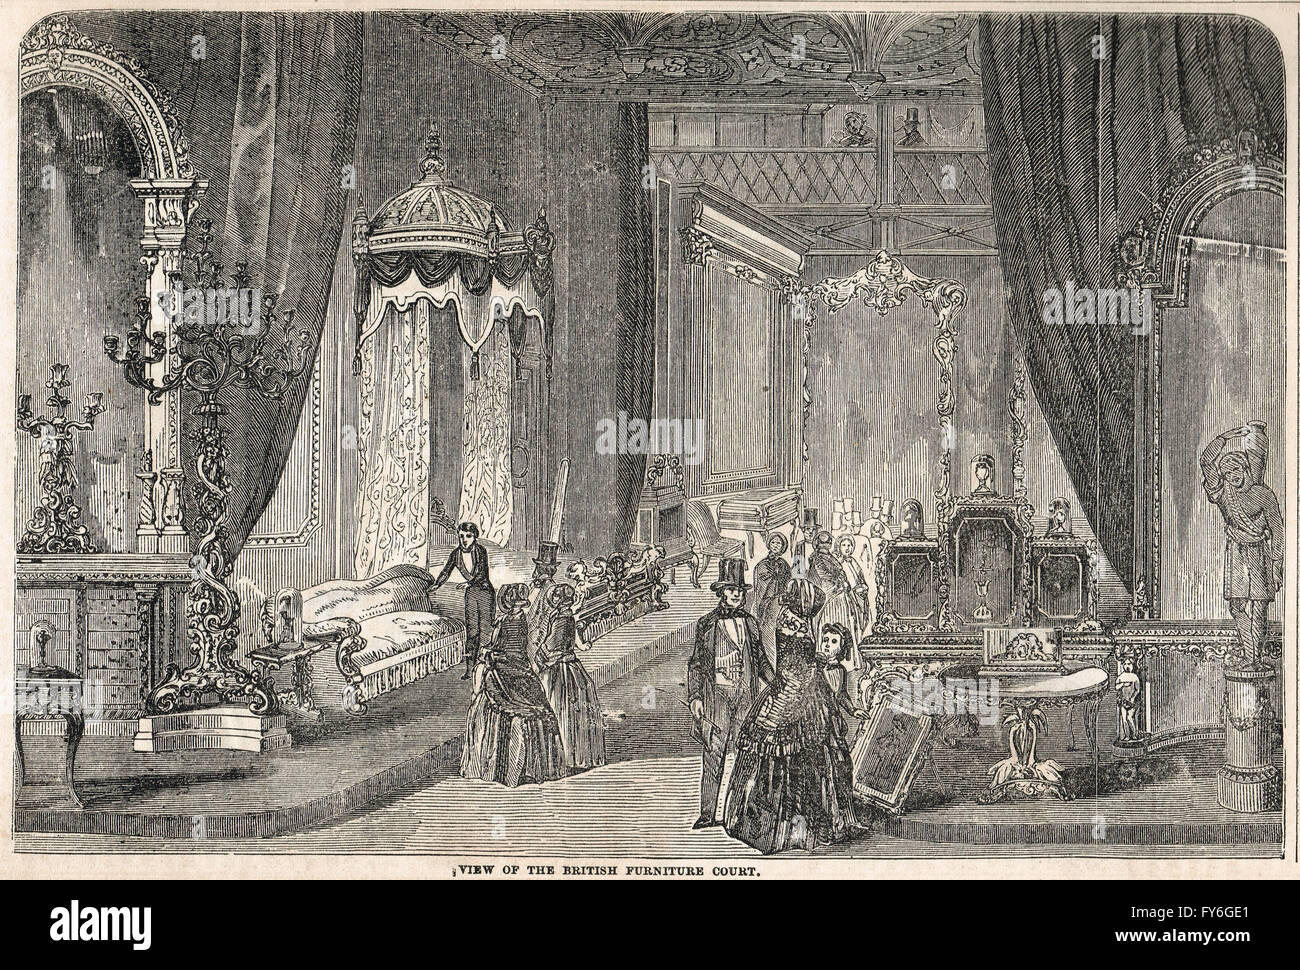 British Furniture Court, The Great Exhibition of 1851 - Stock Image